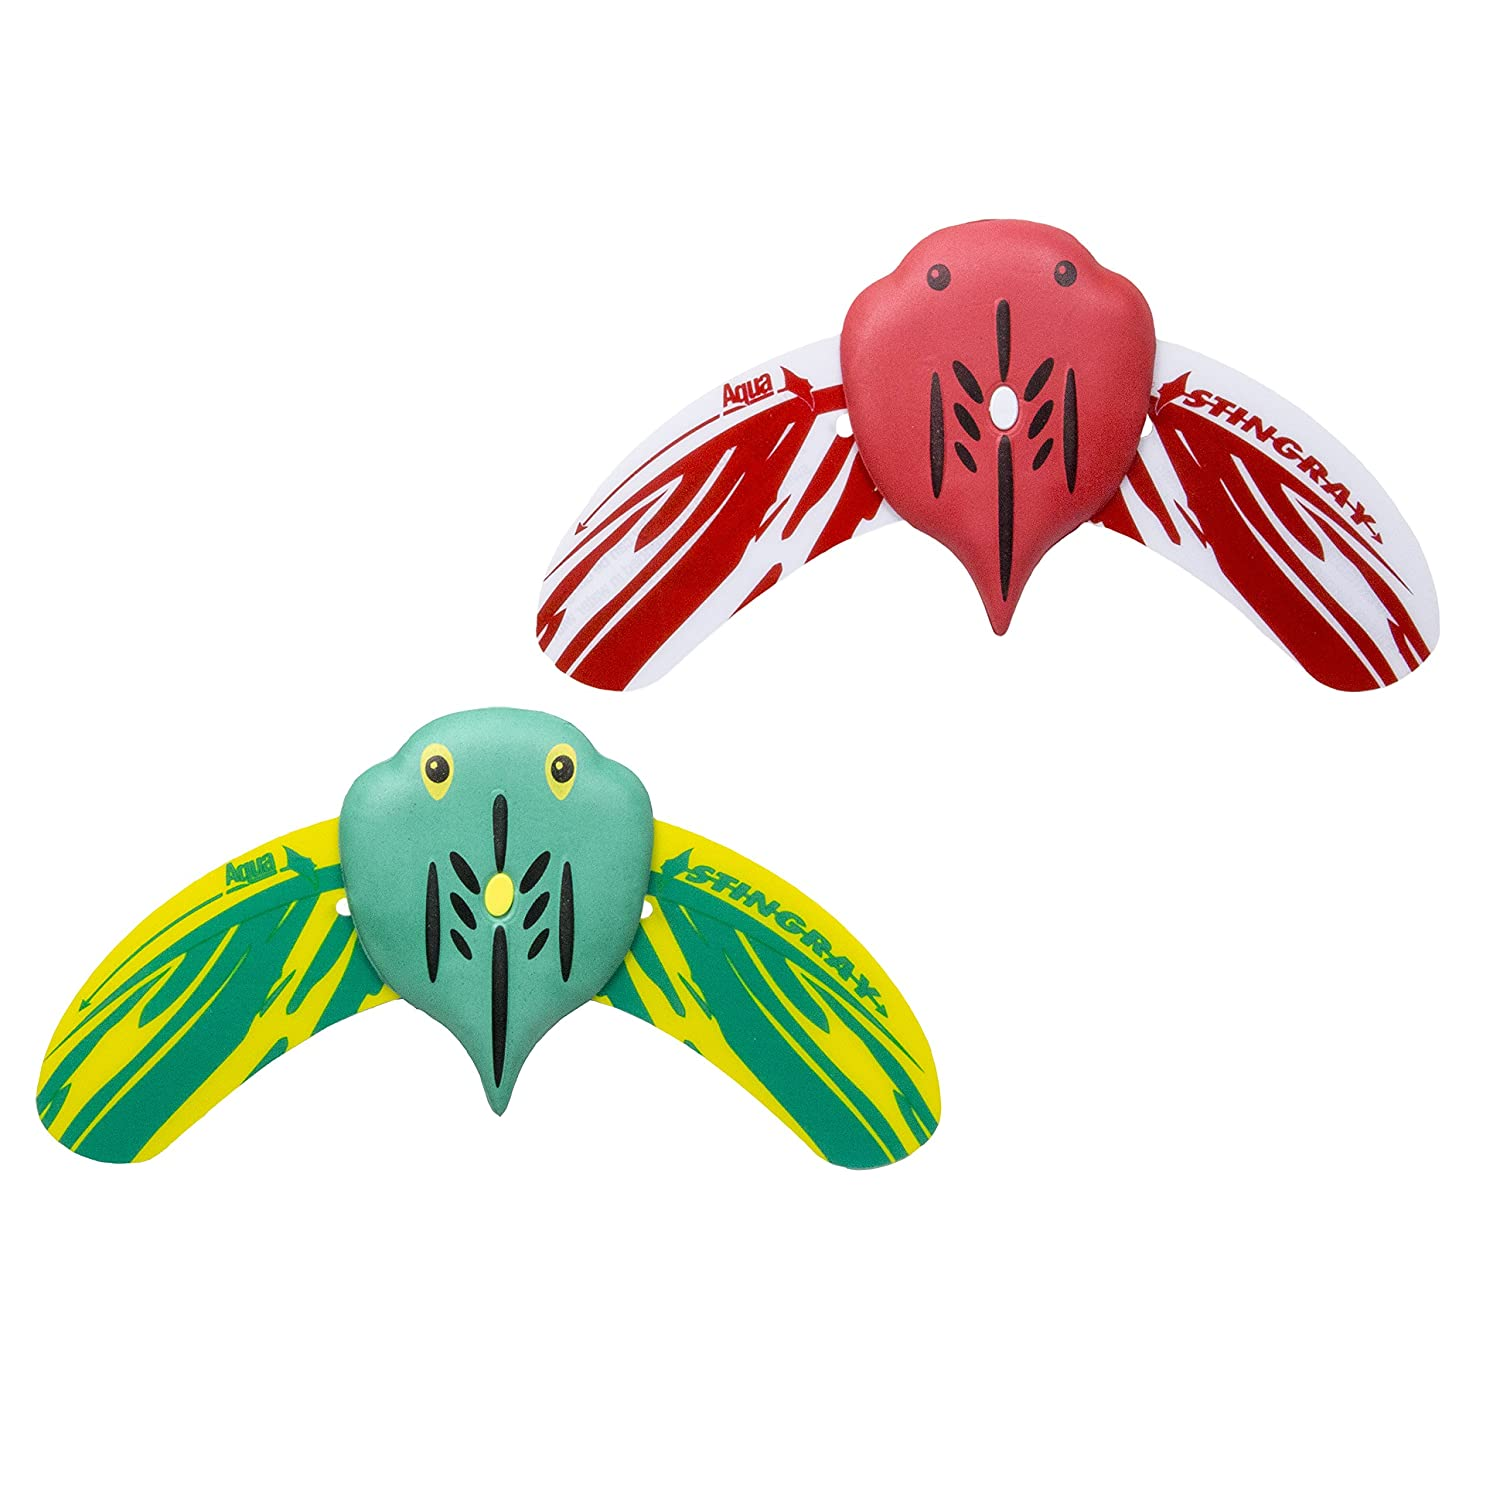 Aqua Mini Stingray Underwater Glider 2 Pack, Self Propelled, Adjustable Fins, Pool Game, Brightly Colored, Ages 5 And Up by Aqua